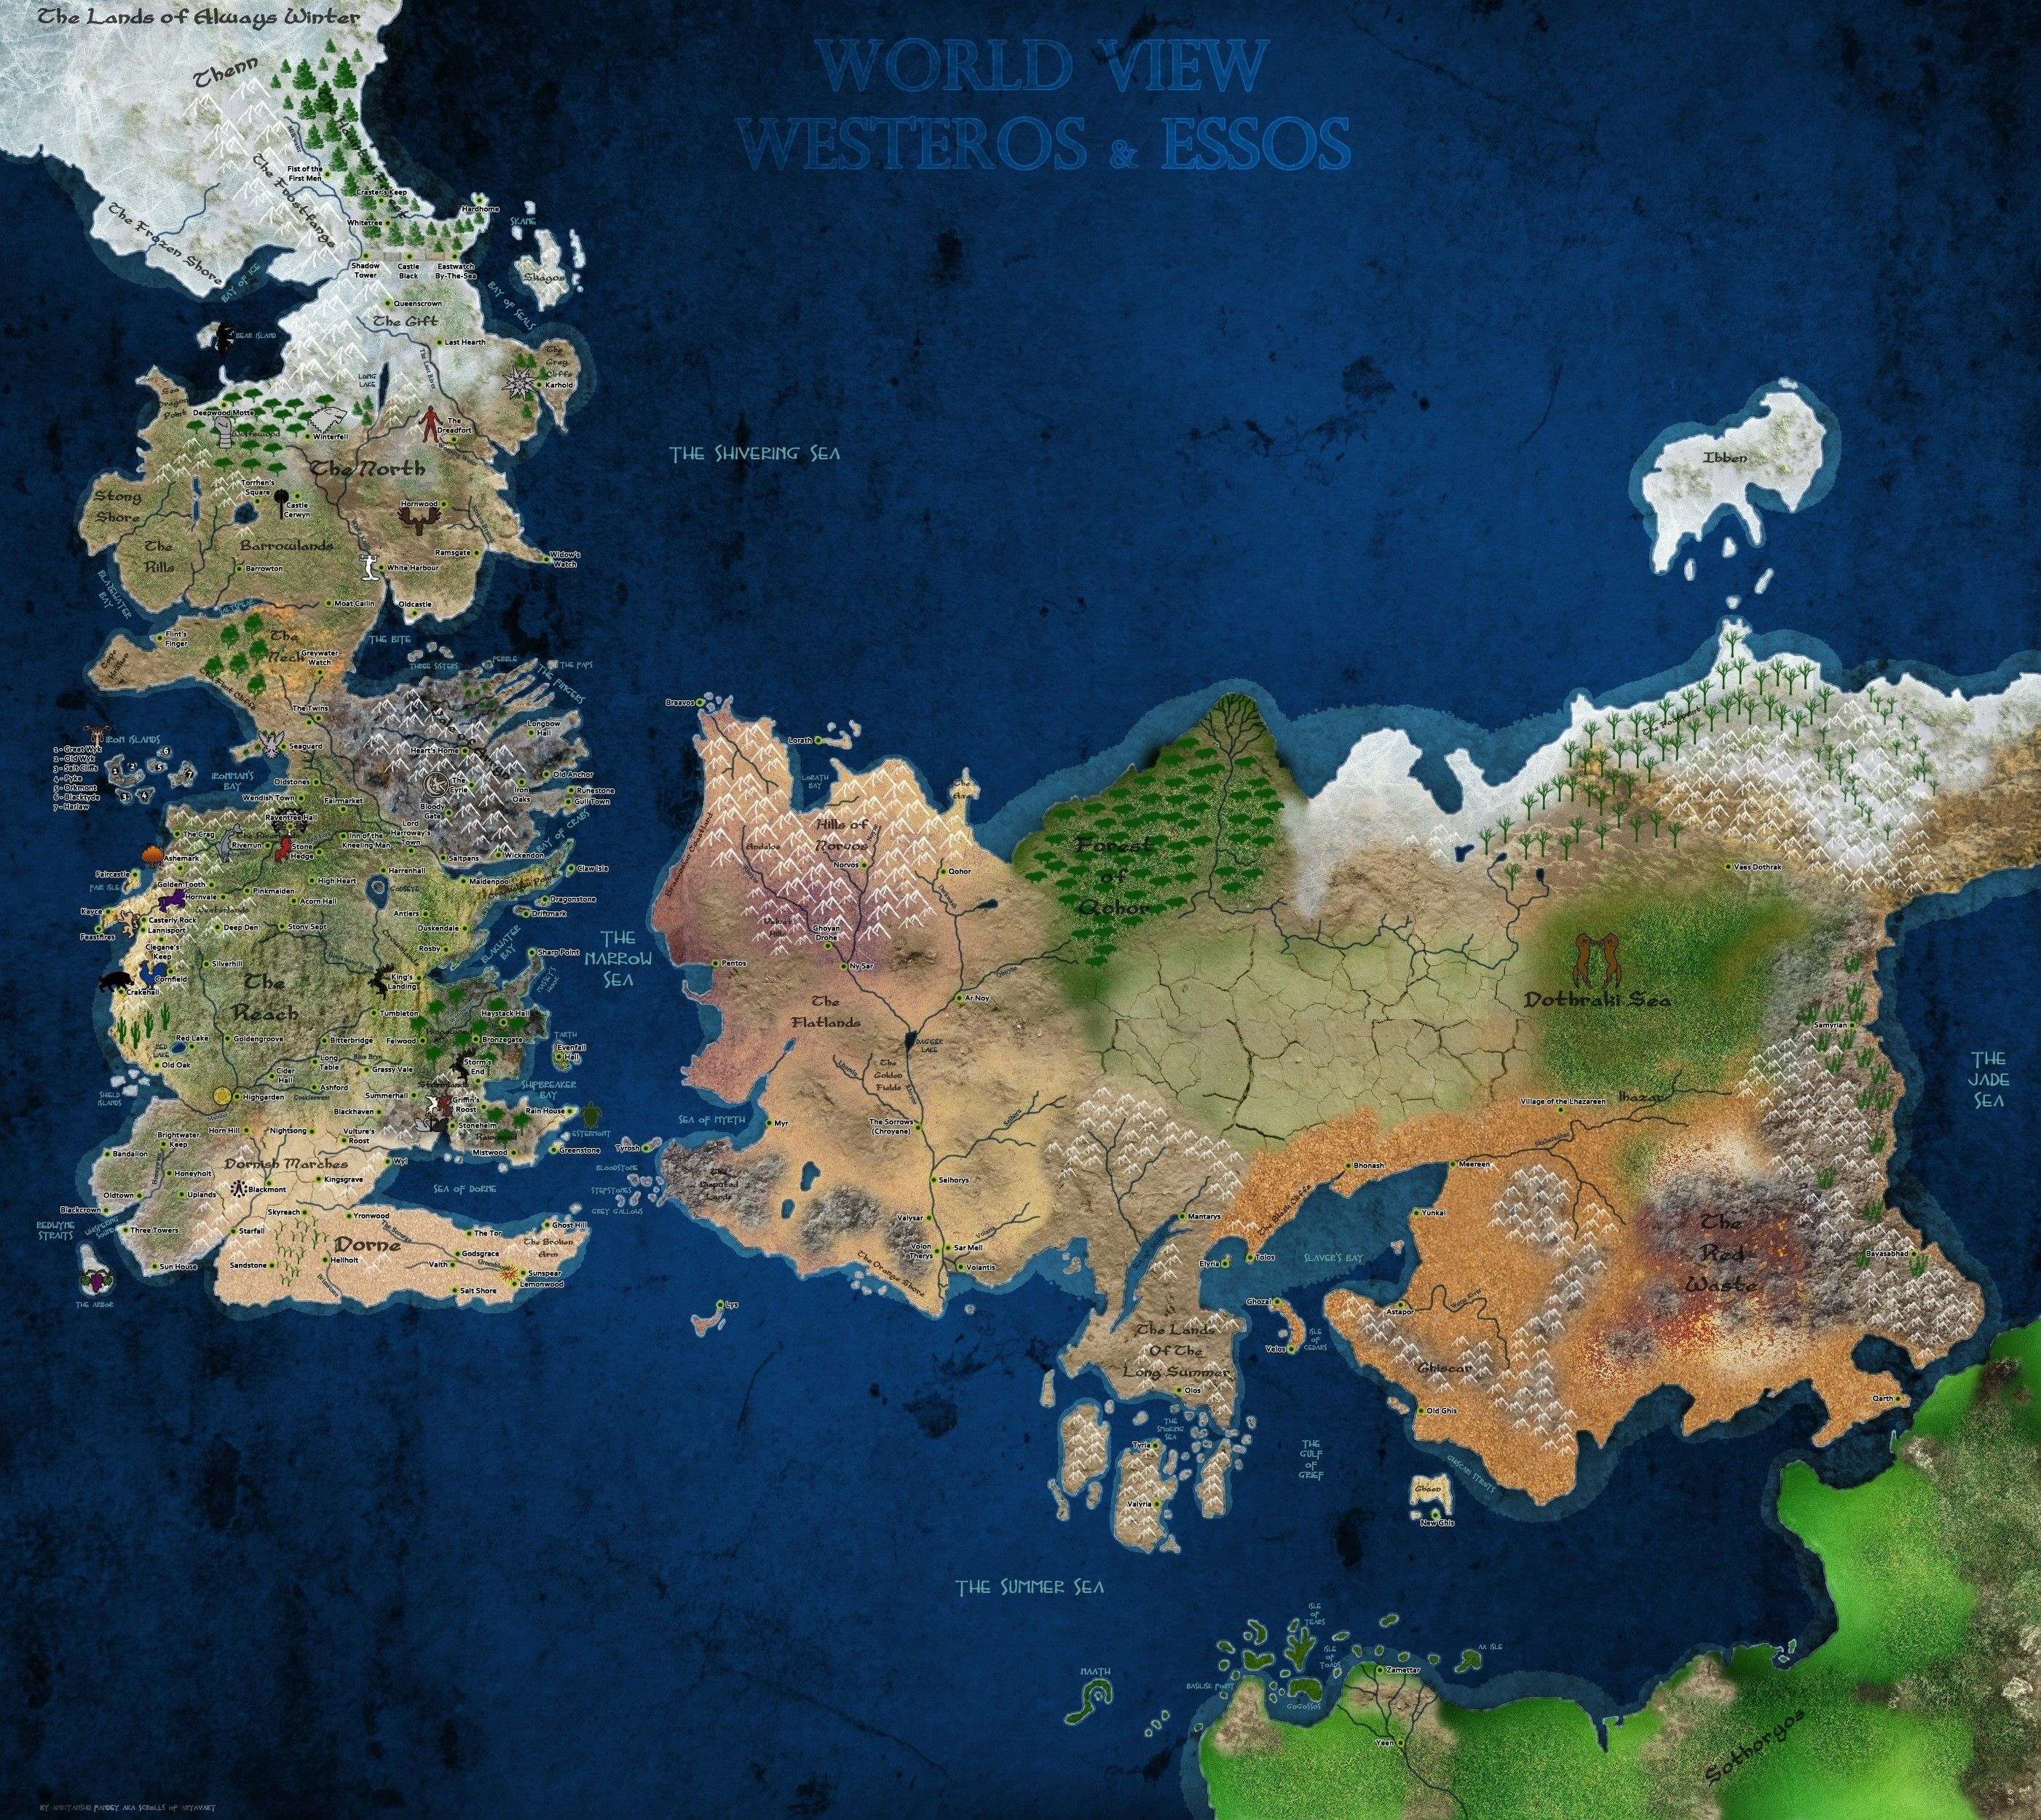 Game of Thrones Map Wallpapers - Top Free Game of Thrones ... Game Of Trones Map on a golden crown, a storm of swords map, justified map, game of thrones - season 2, jericho map, gendry map, dallas map, a storm of swords, qarth map, the kingsroad, a game of thrones, got map, spooksville map, guild wars 2 map, bloodline map, the pointy end, lord snow, game of thrones - season 1, works based on a song of ice and fire, winter is coming, tales of dunk and egg, clash of kings map, star trek map, winterfell map, a clash of kings, jersey shore map, downton abbey map, a game of thrones: genesis, walking dead map, sons of anarchy, themes in a song of ice and fire, fire and blood, camelot map, world map, a game of thrones collectible card game, the prince of winterfell, valyria map, narnia map,